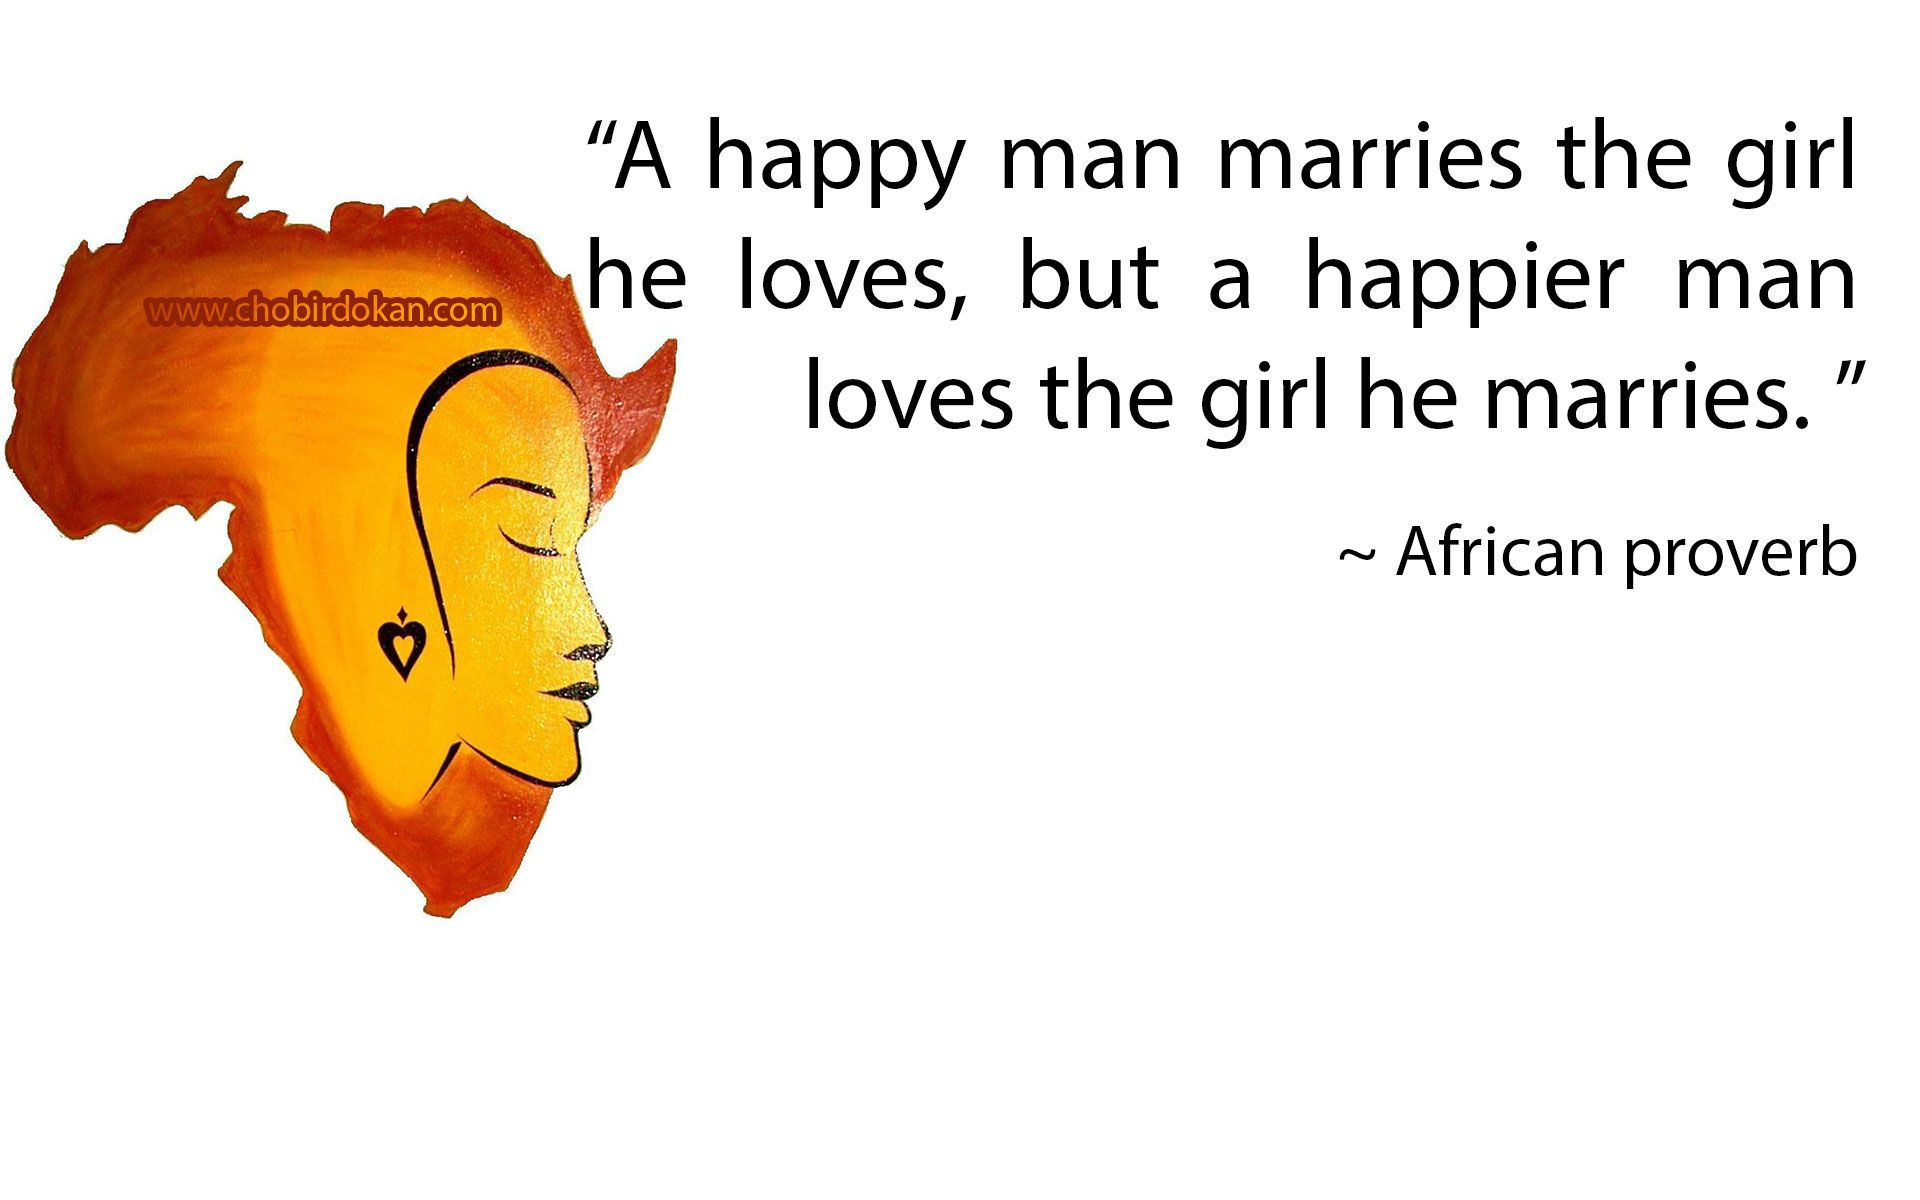 african proverbs about love Cute Romantic & Sad Love quotes Pinterest